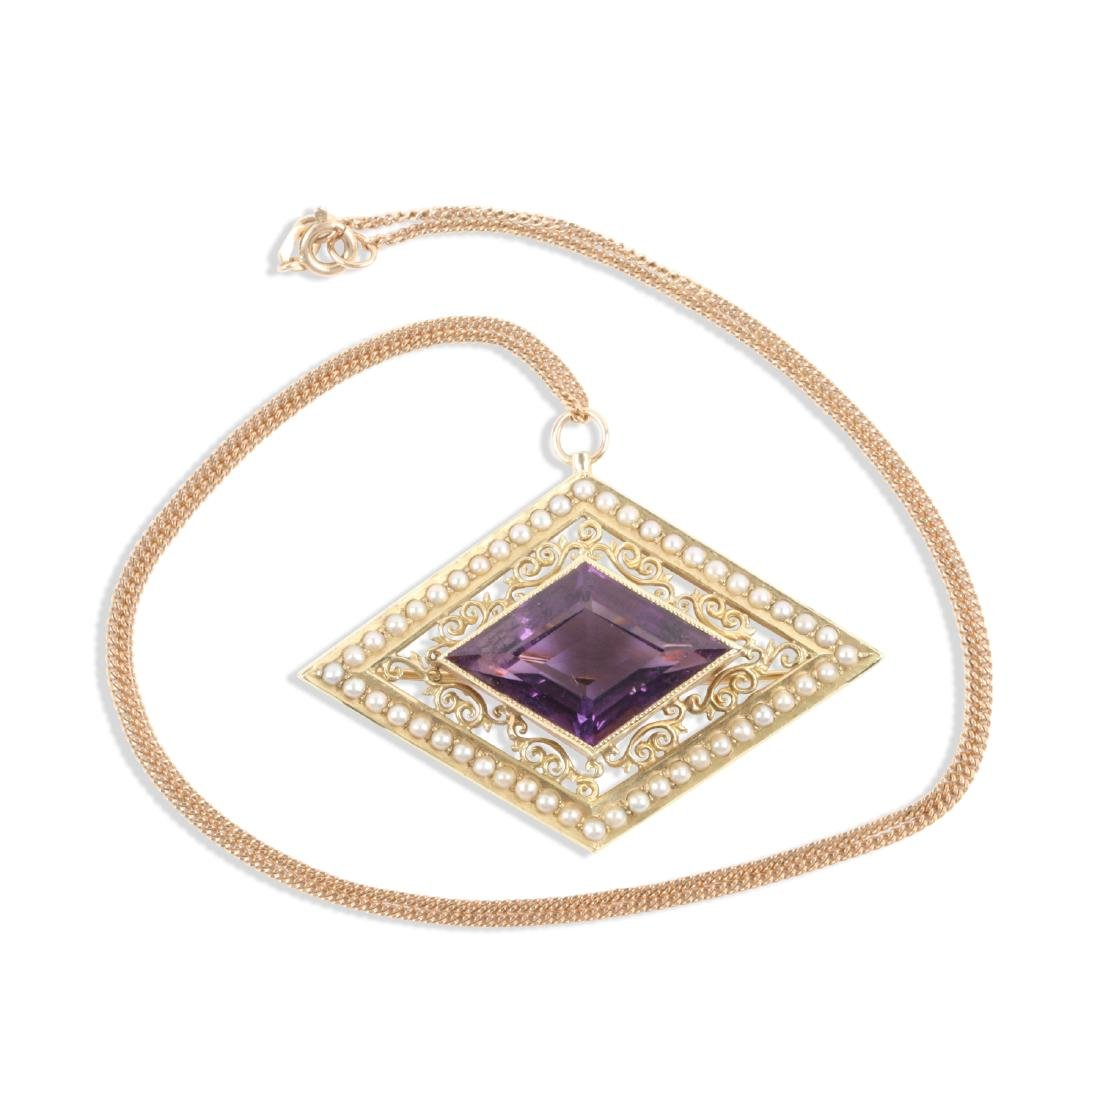 A Victorian 14K, Amethyst & Seed Pearl Necklace